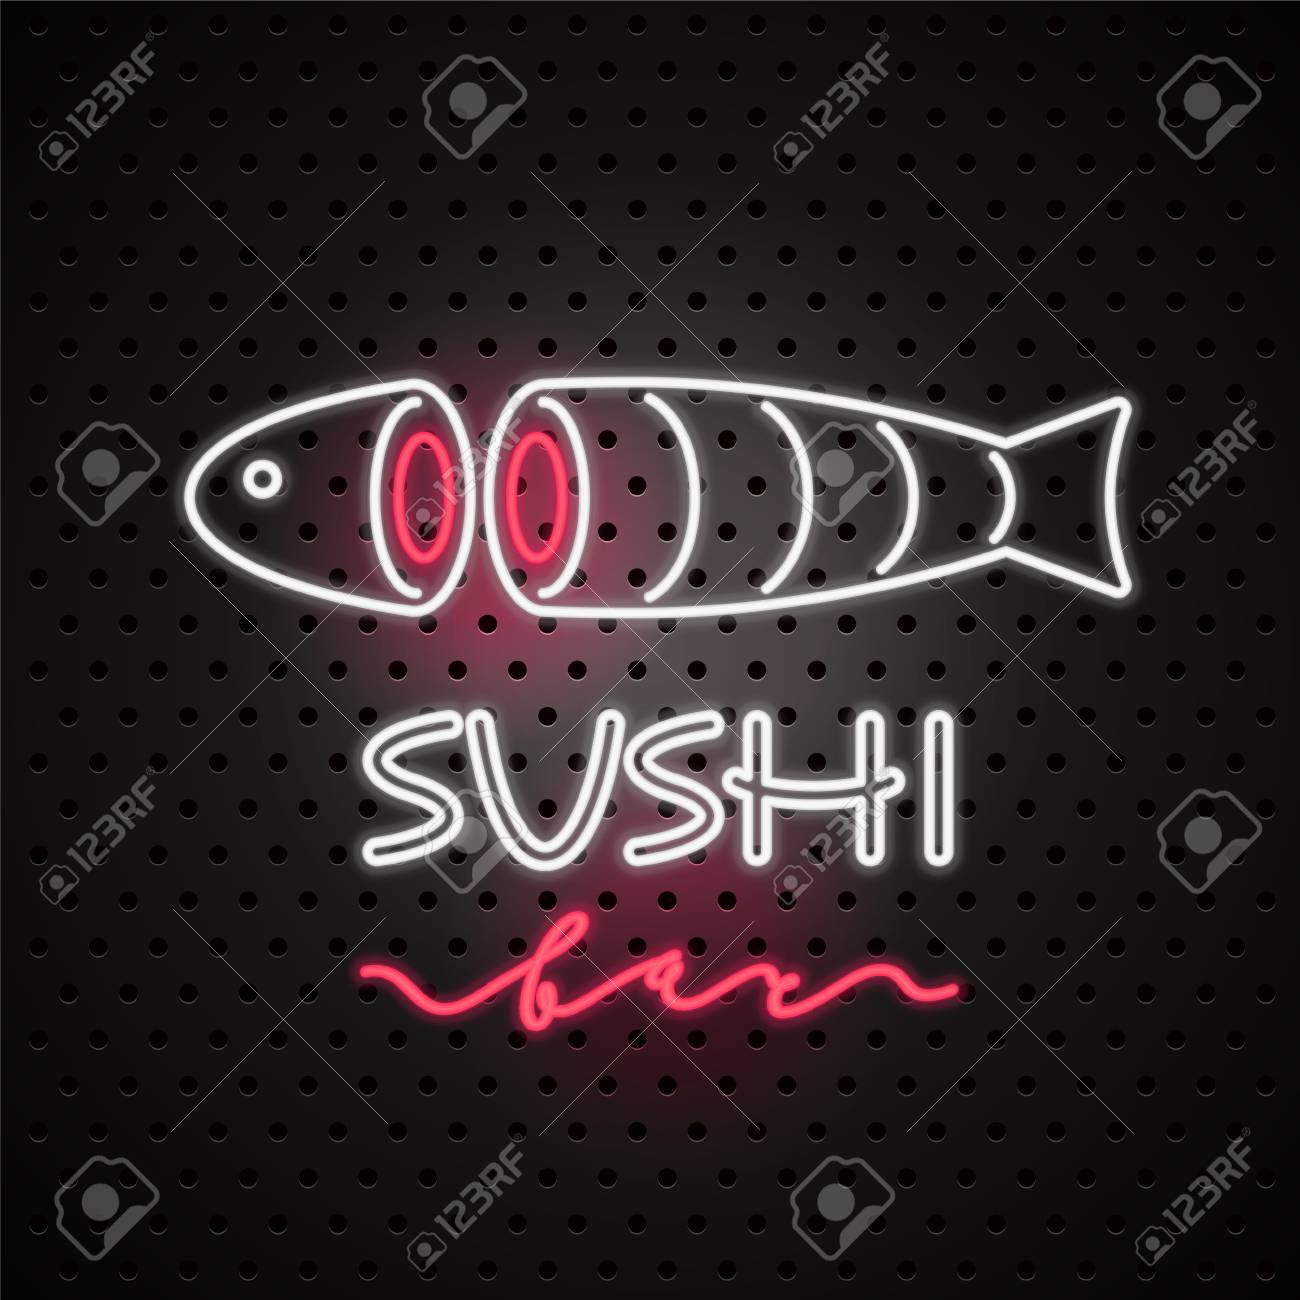 vector icon design element for sushi with neon sign template